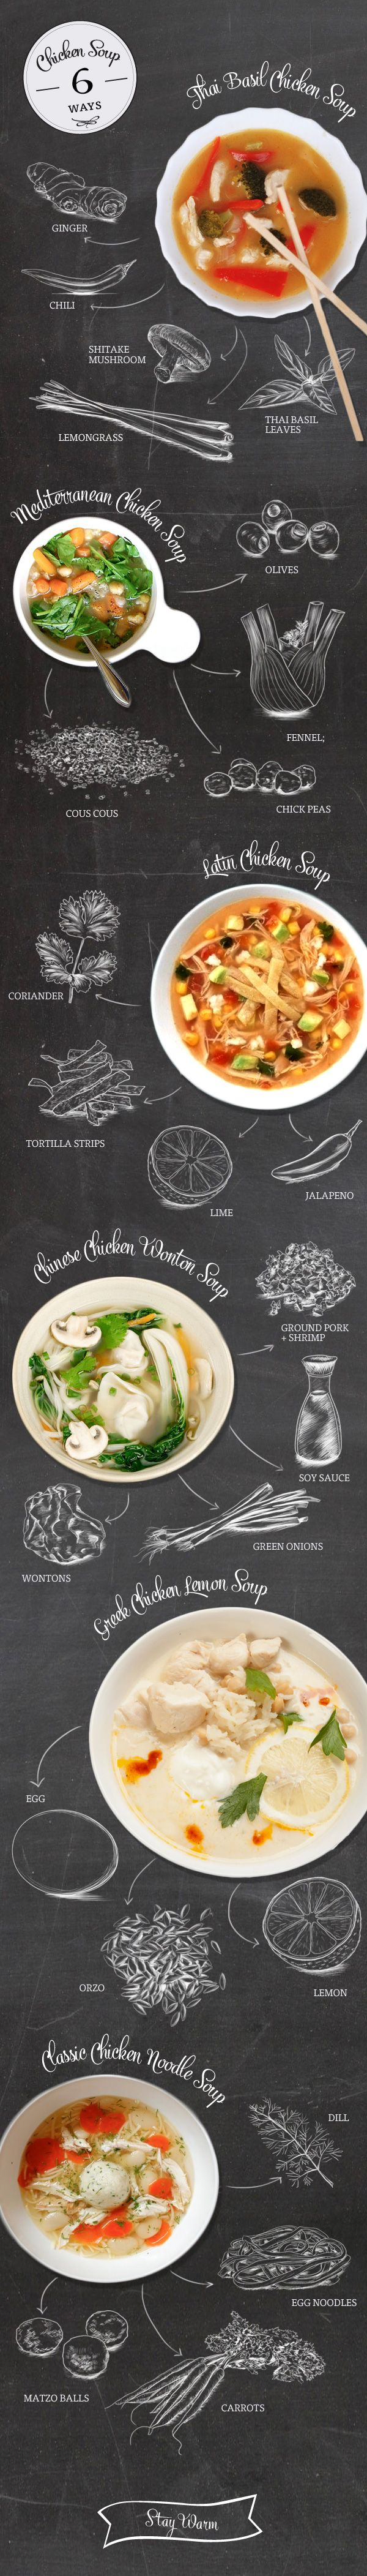 Chicken Soup Recipes Infographic - every culture has its own chicken comfort soup!